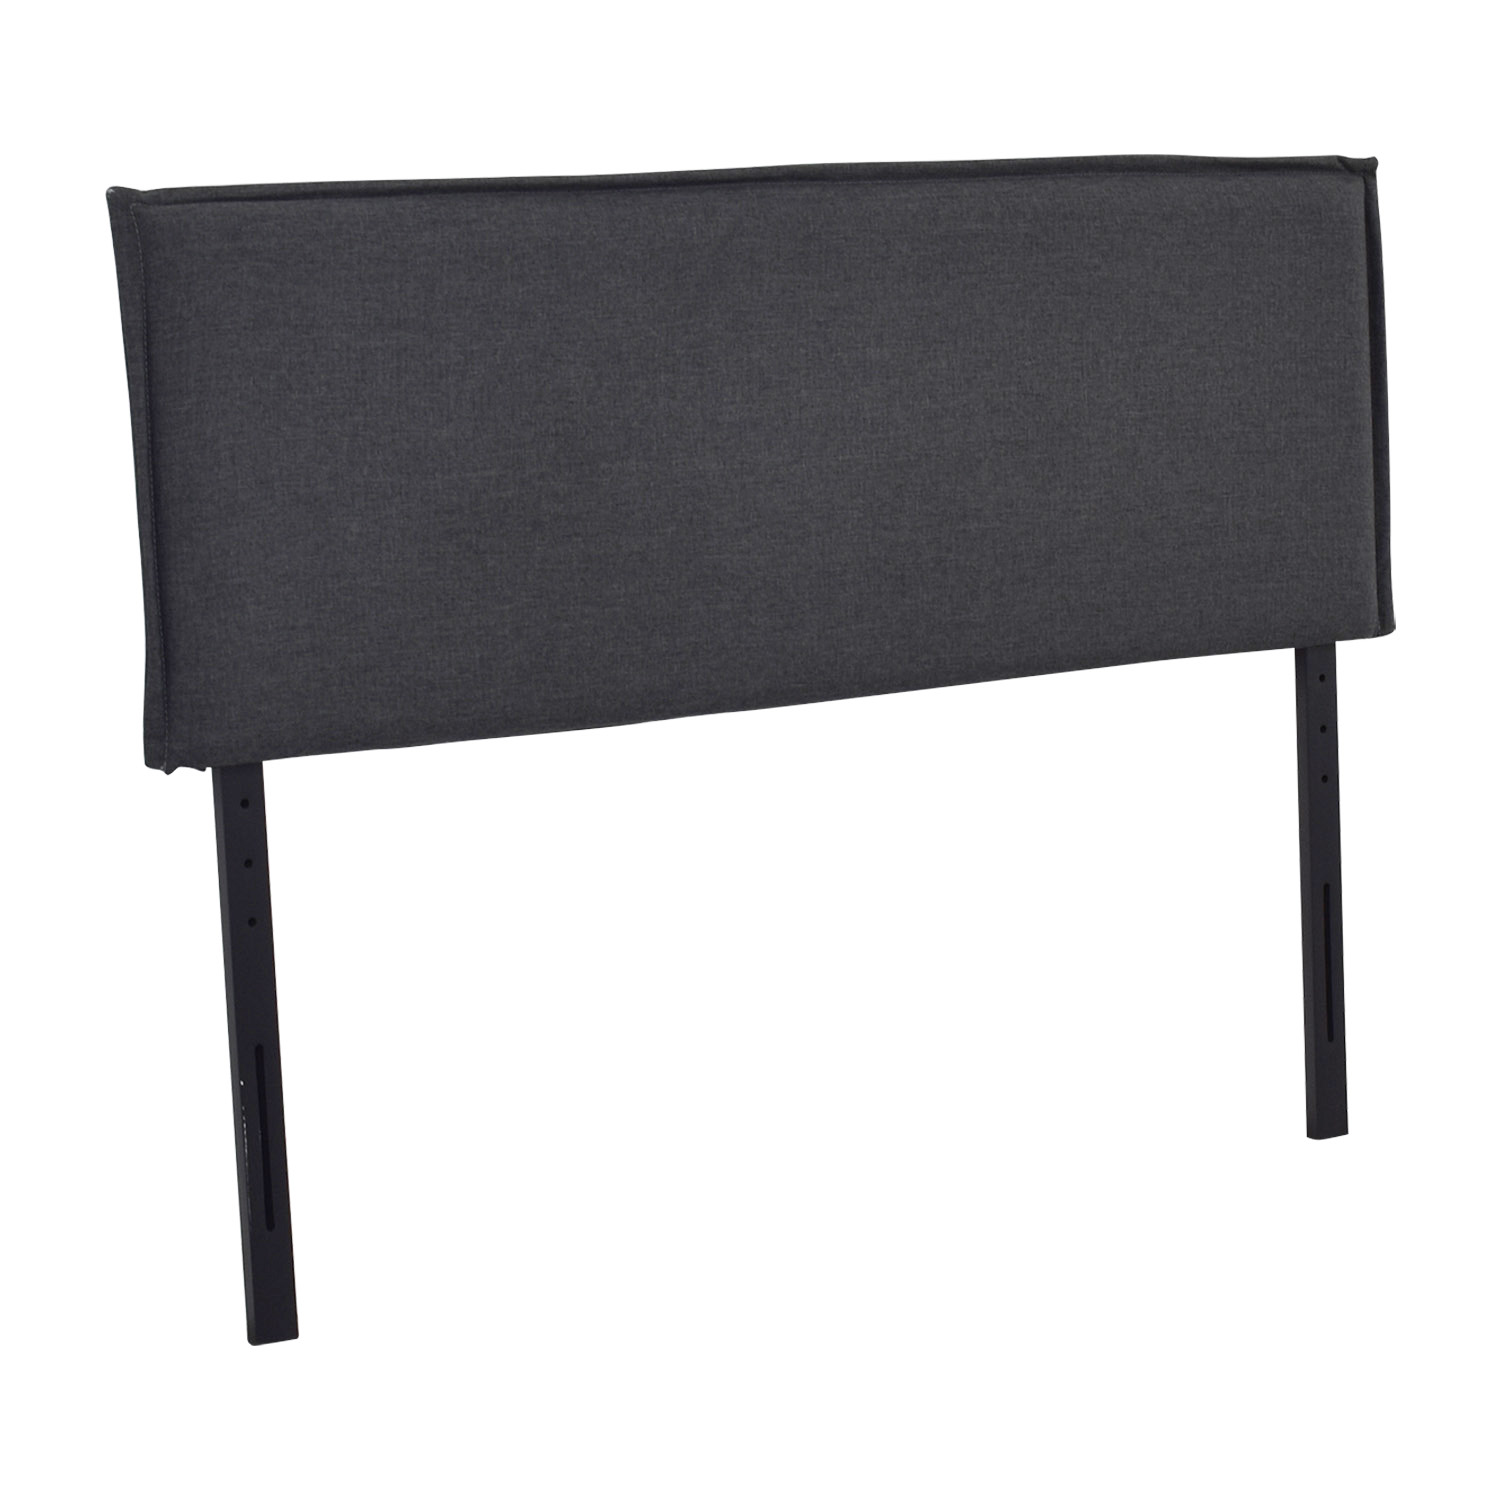 Modway Modway Camille Grey Upholstered Headboard GREY